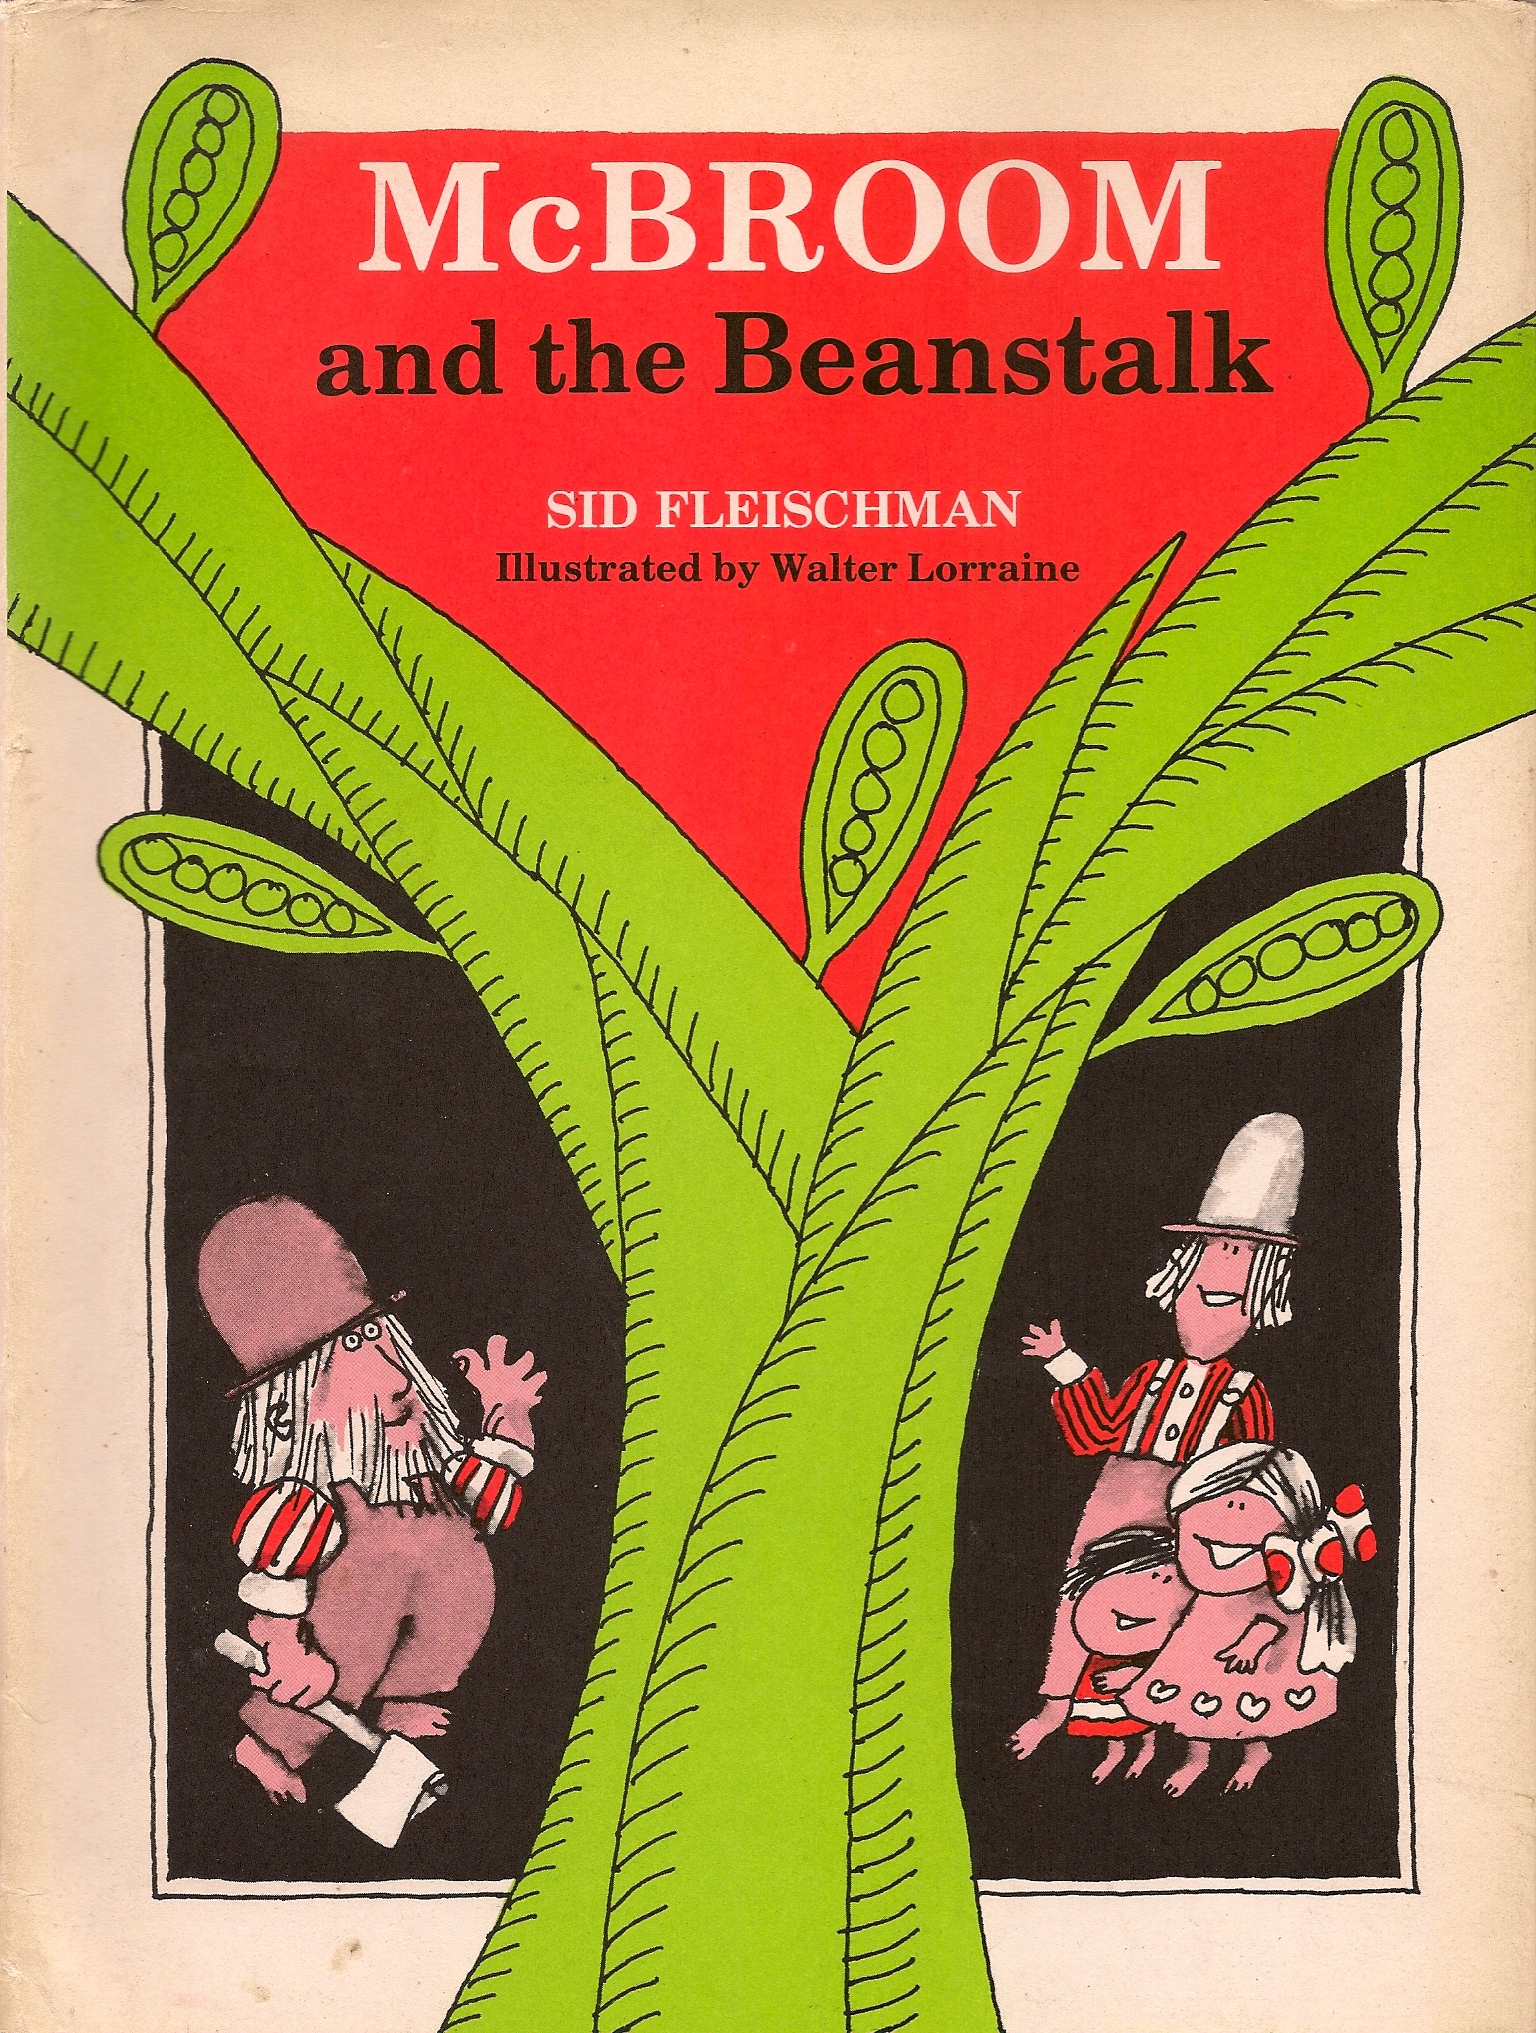 McBroom and the Beanstalk